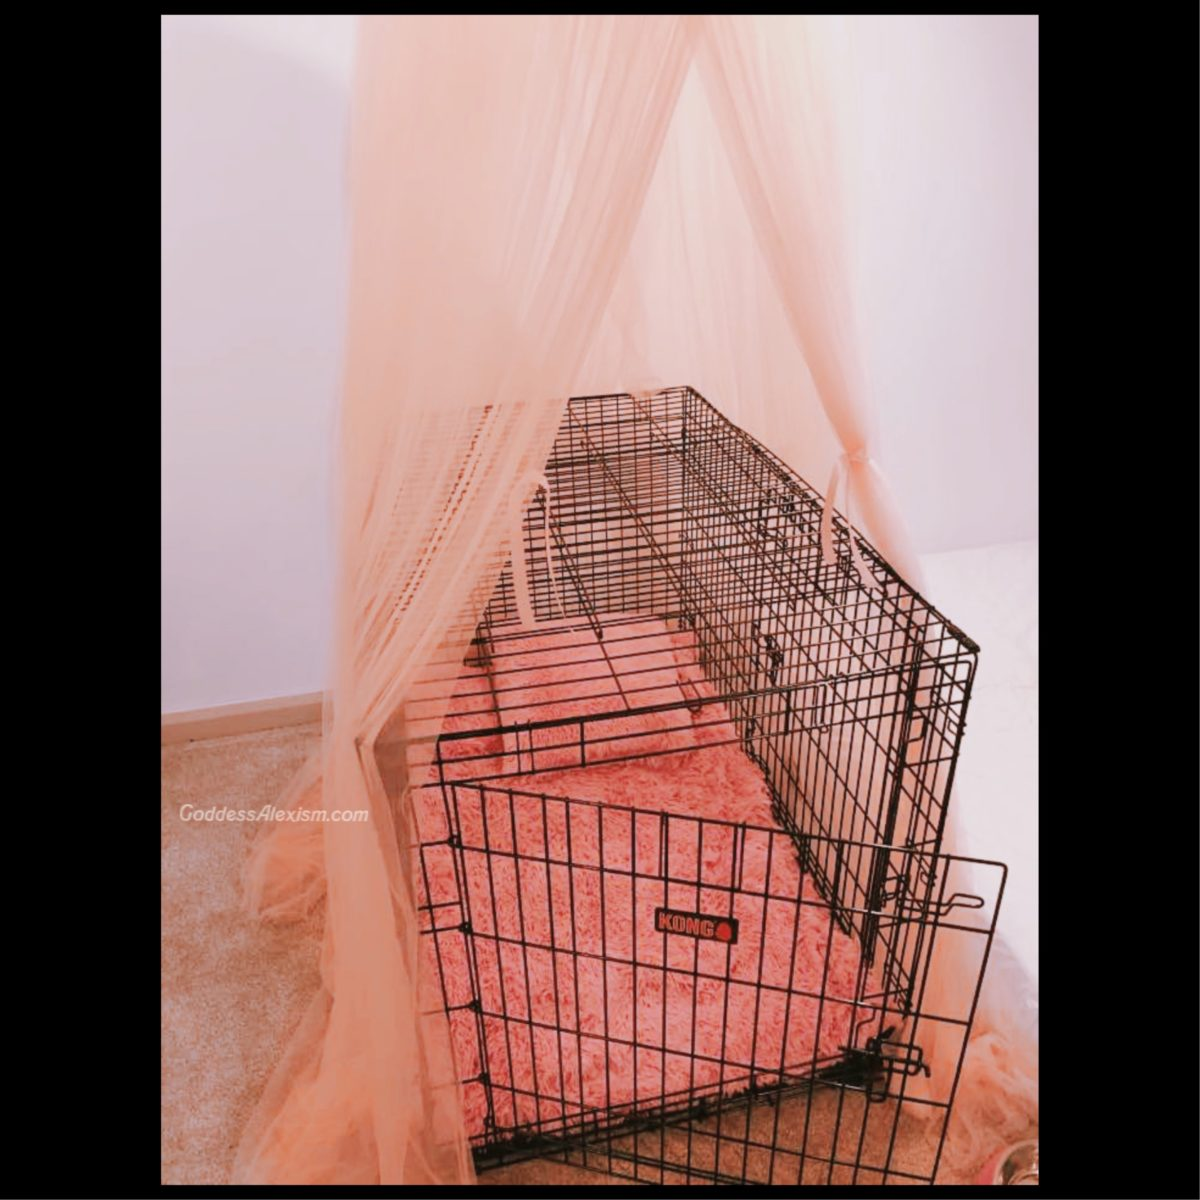 Sell your bed and get a cage to sleep in instead